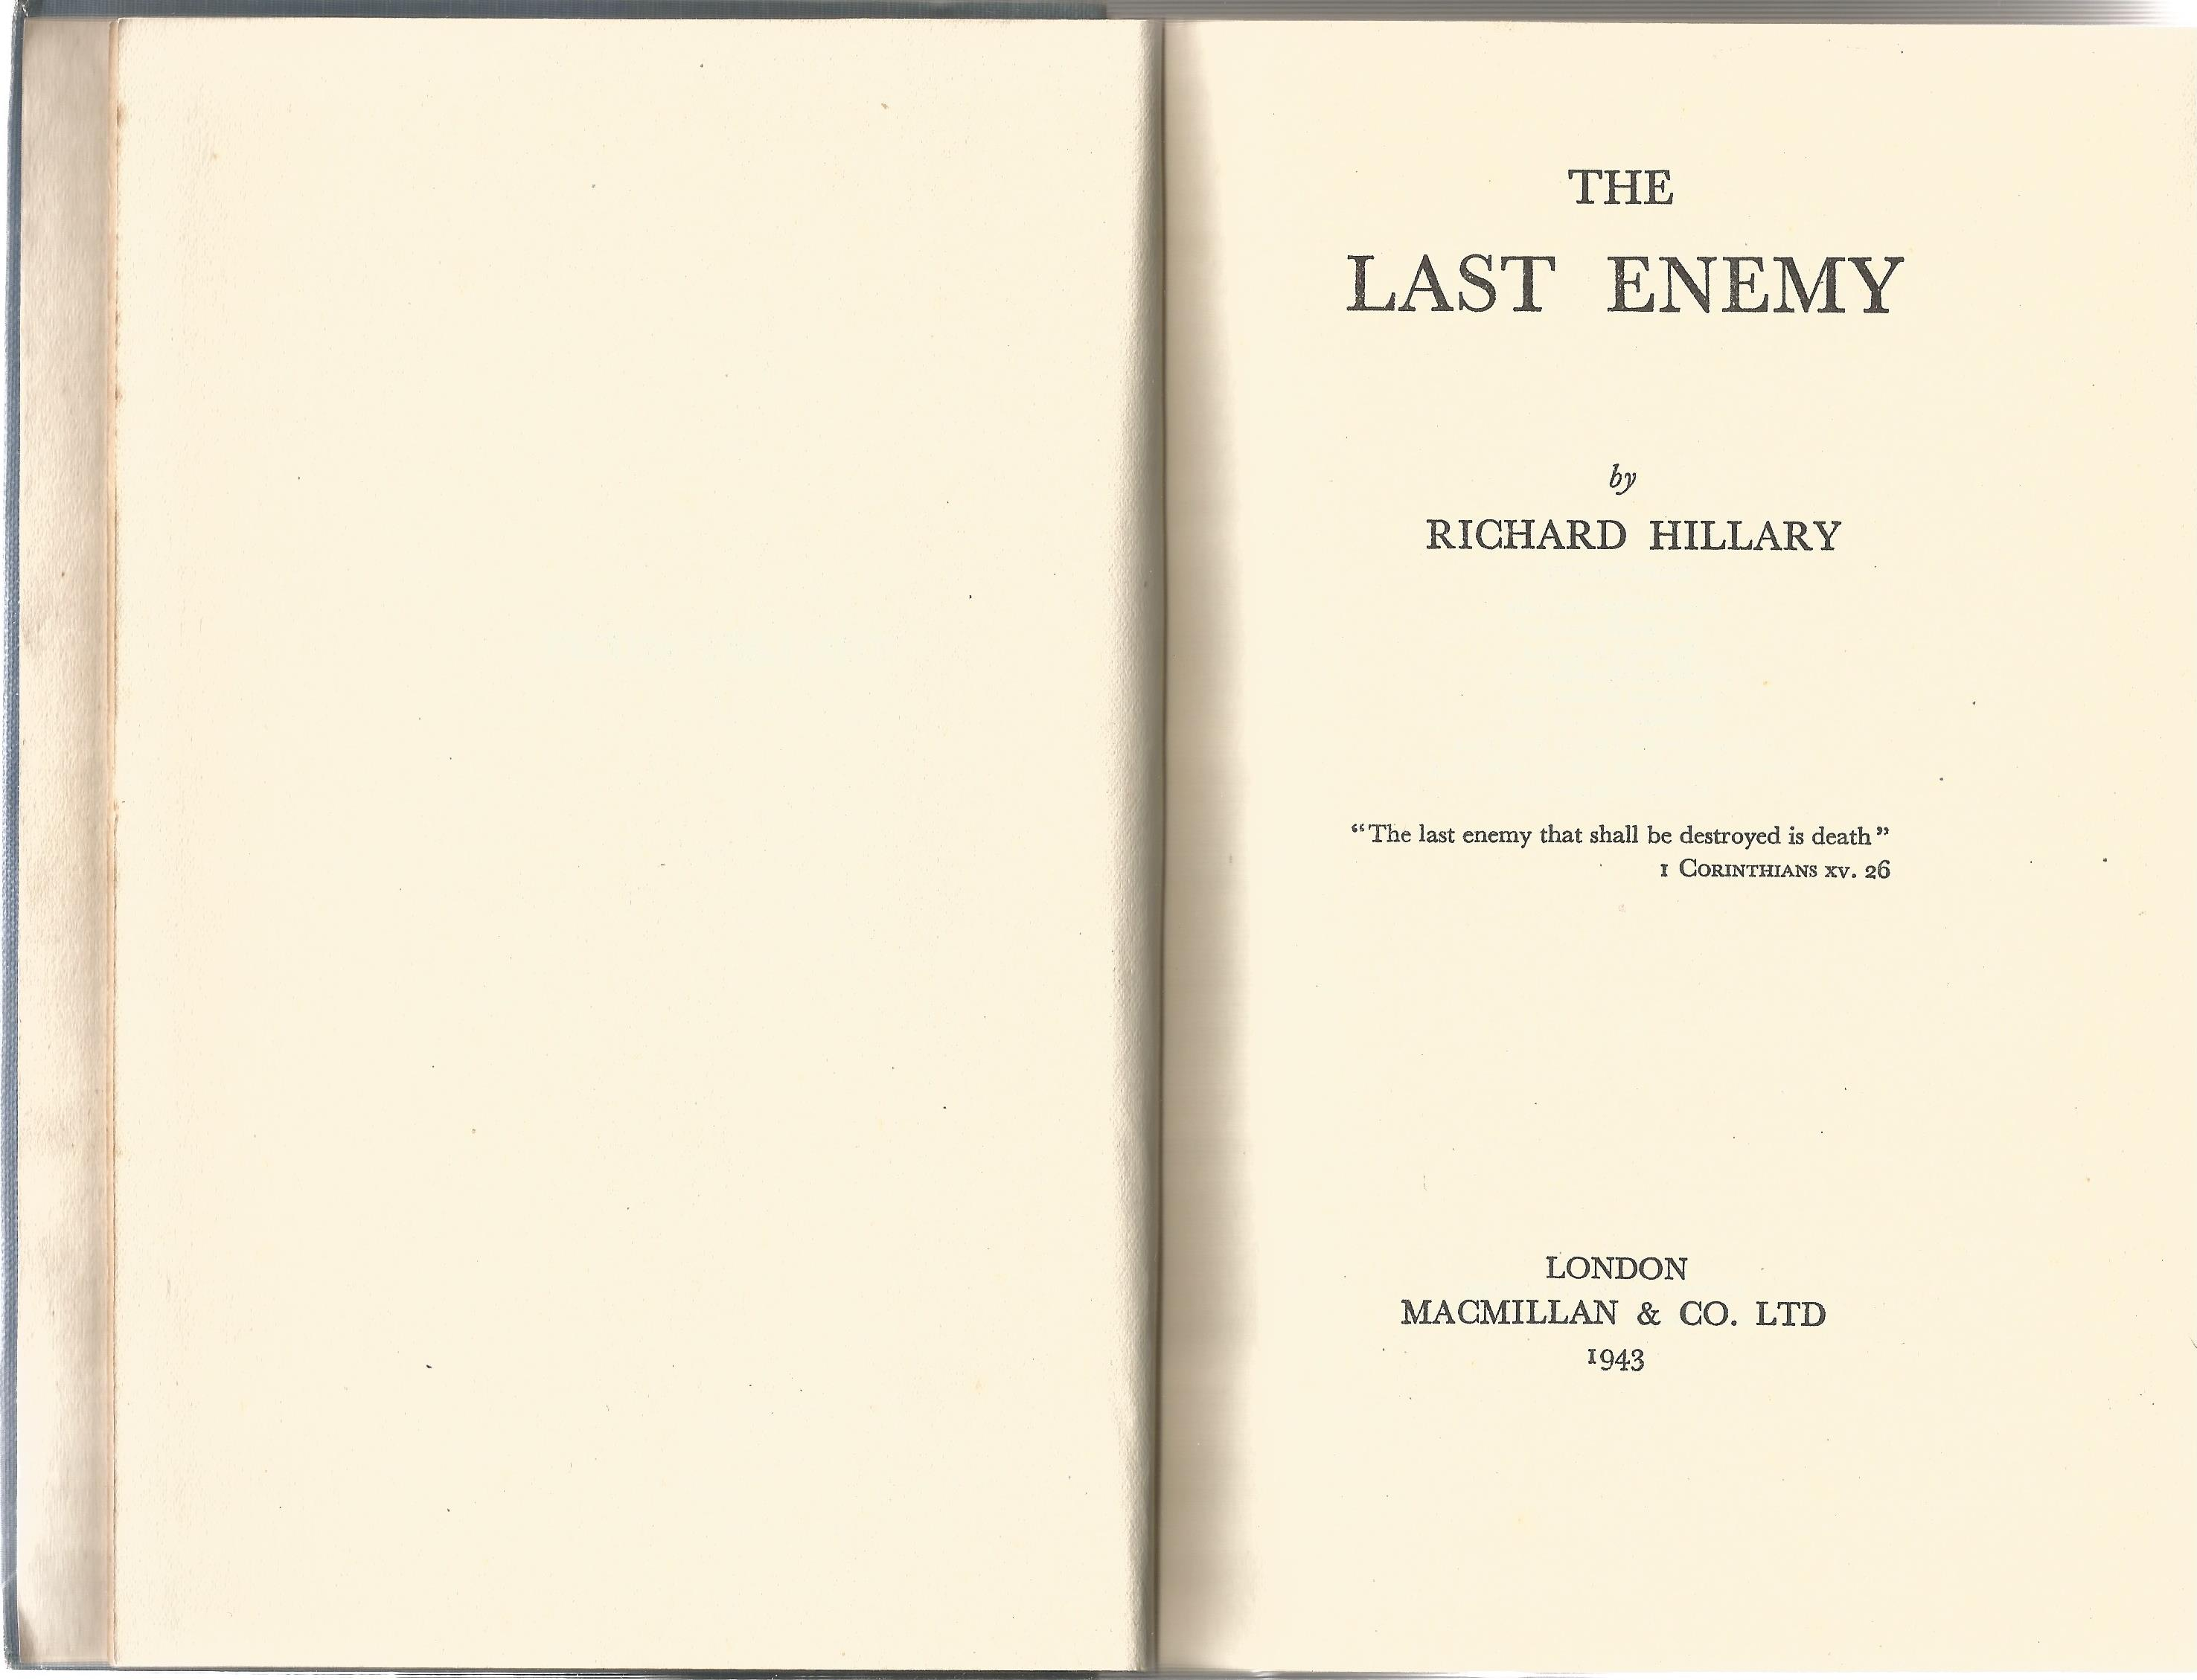 Richard Hillary. The Last Enemy. A Signed hardback book. Signed inside by an Elizabeth Wilkinson - Image 3 of 3